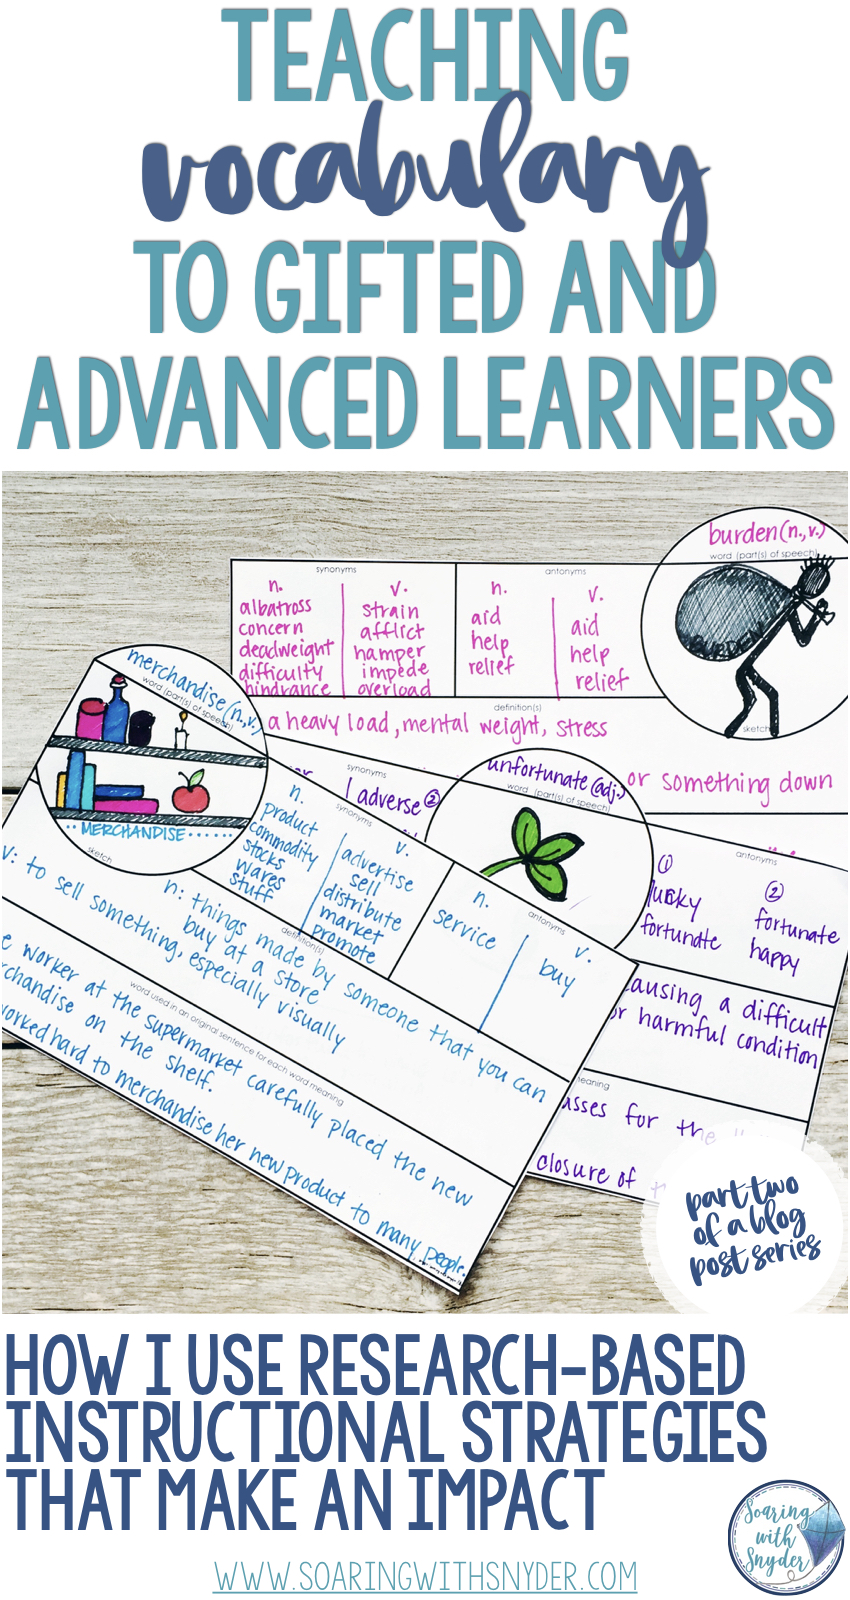 Teaching Vocabulary to Gifted and Advanced Learners